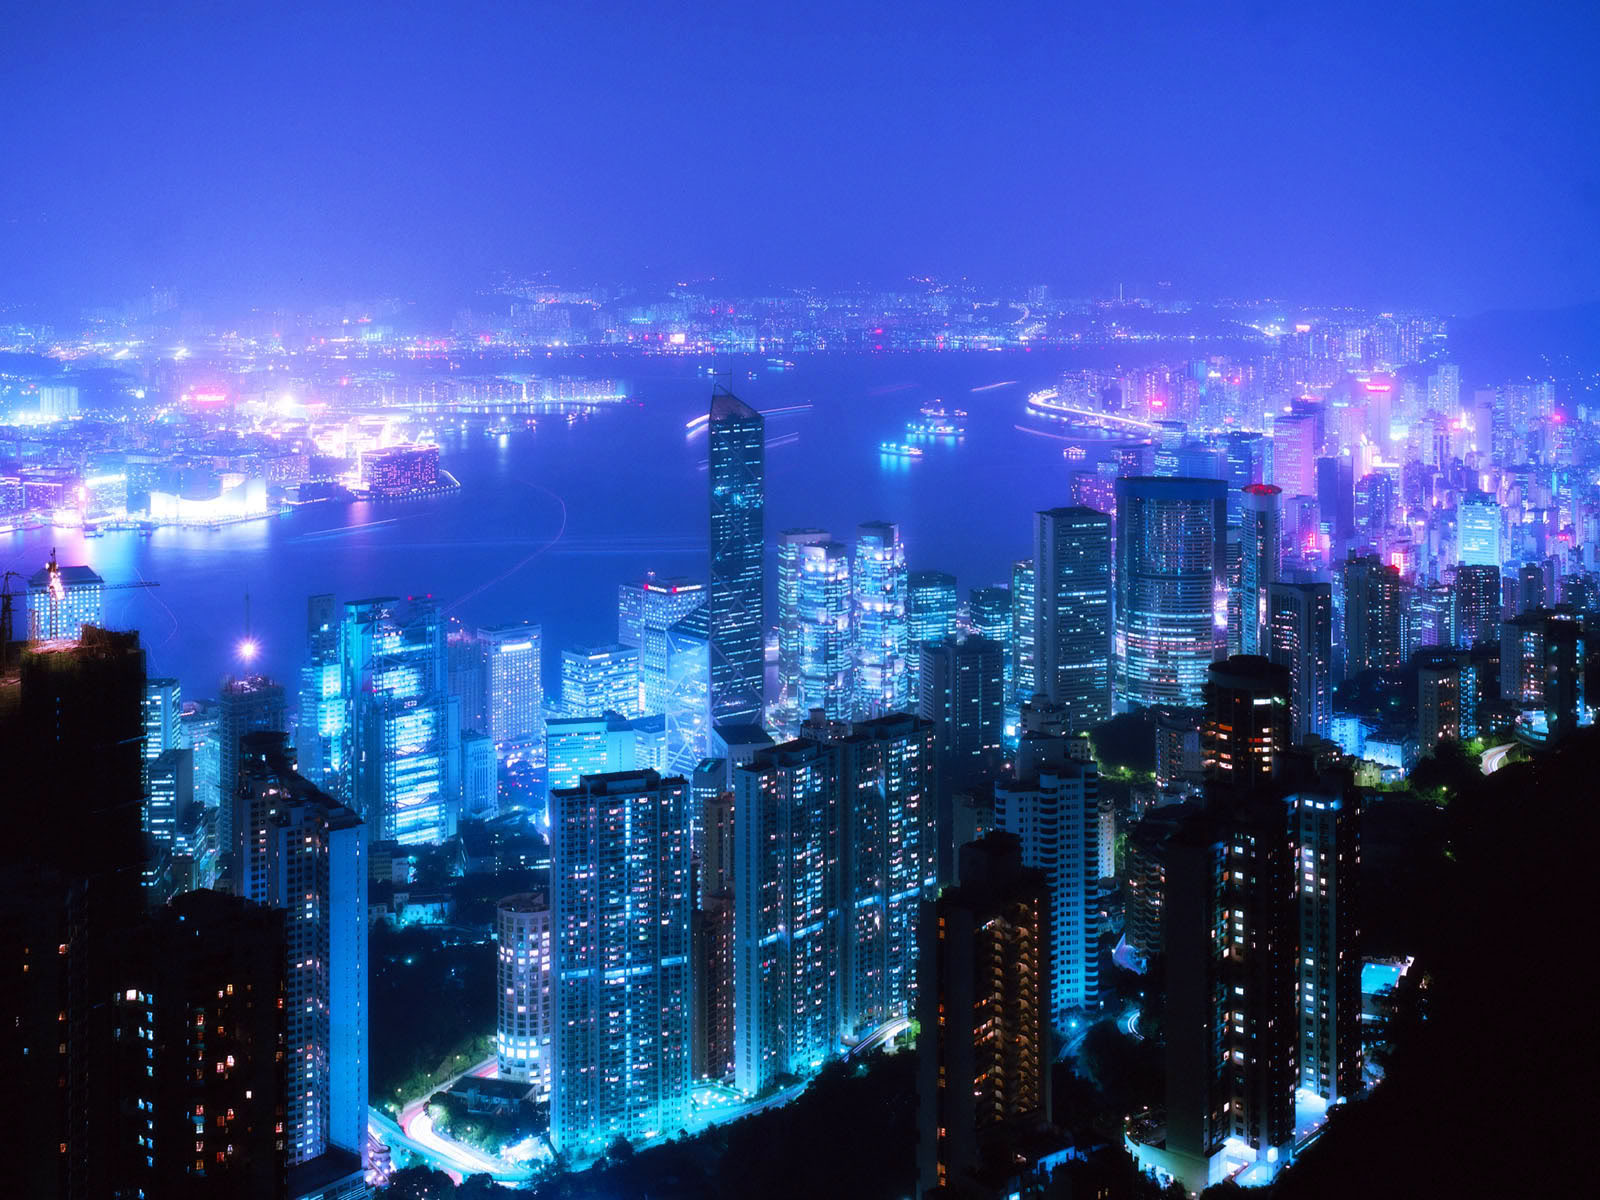 Download Cool Cities at Night HD Wallpapers Collection   Fullsize 1600x1200